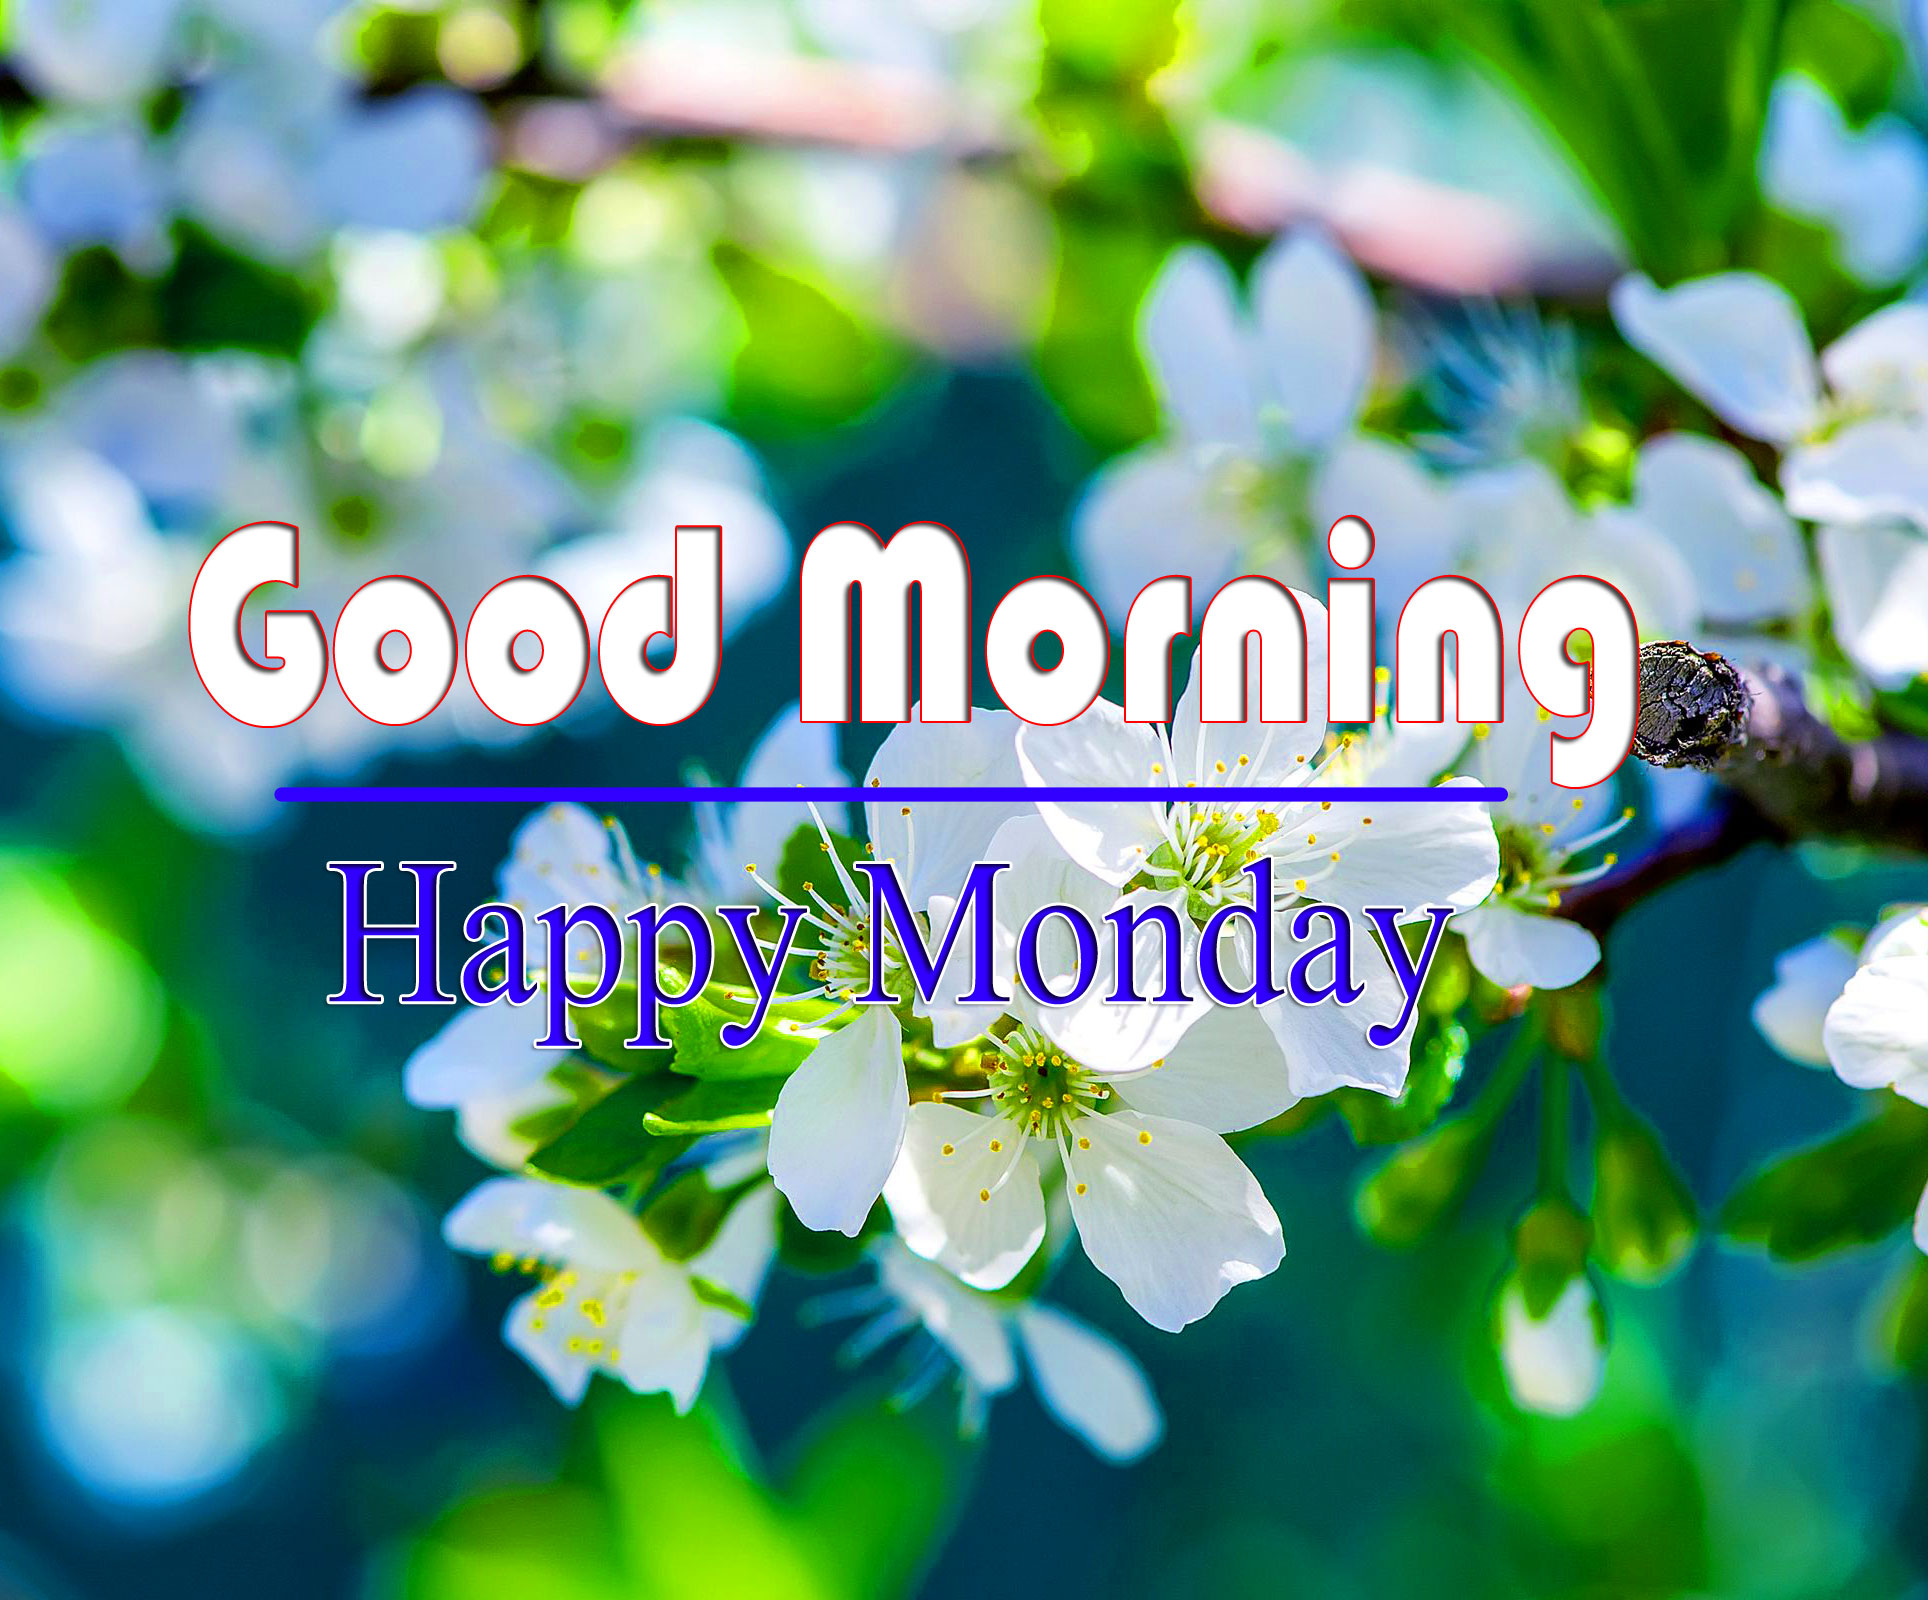 New HD Monday Good Morning Images